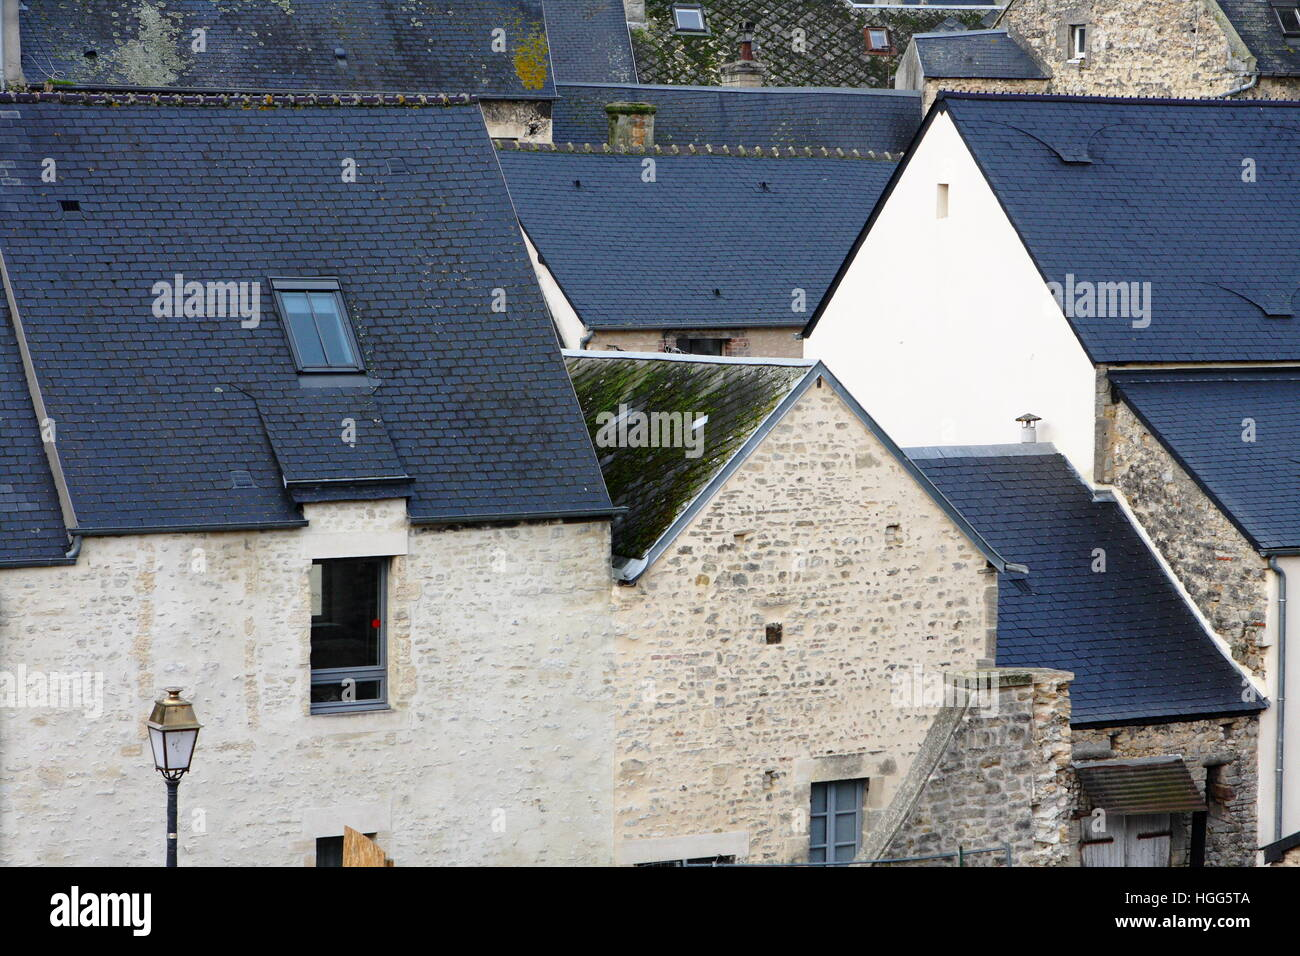 A view across rooftops of buildings in Bayeux, Normandy, France Stock Photo